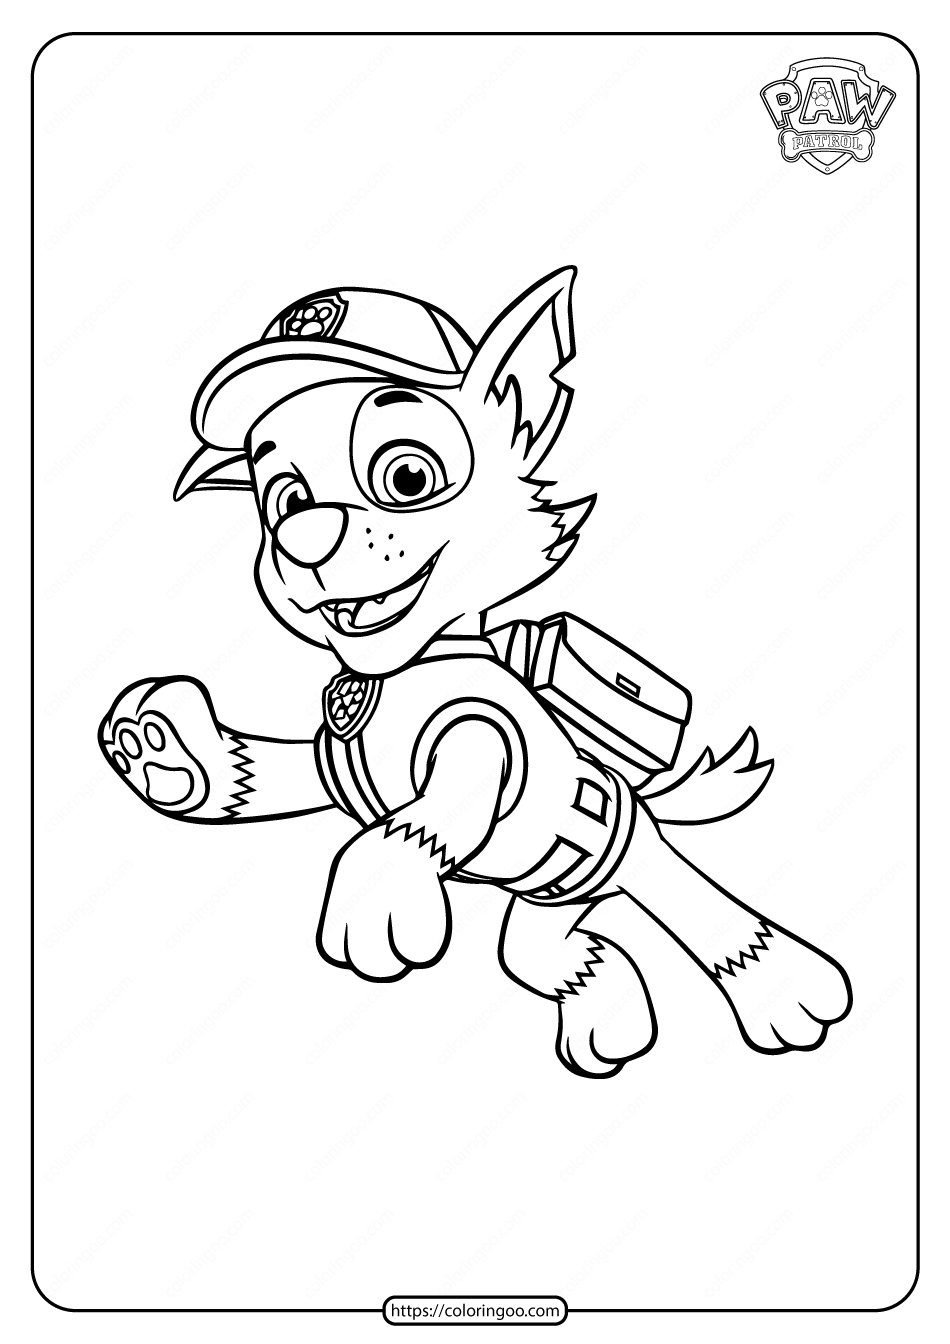 paw patrol rocky paw patrol rocky recycler dog in action with his vehicle rocky paw patrol